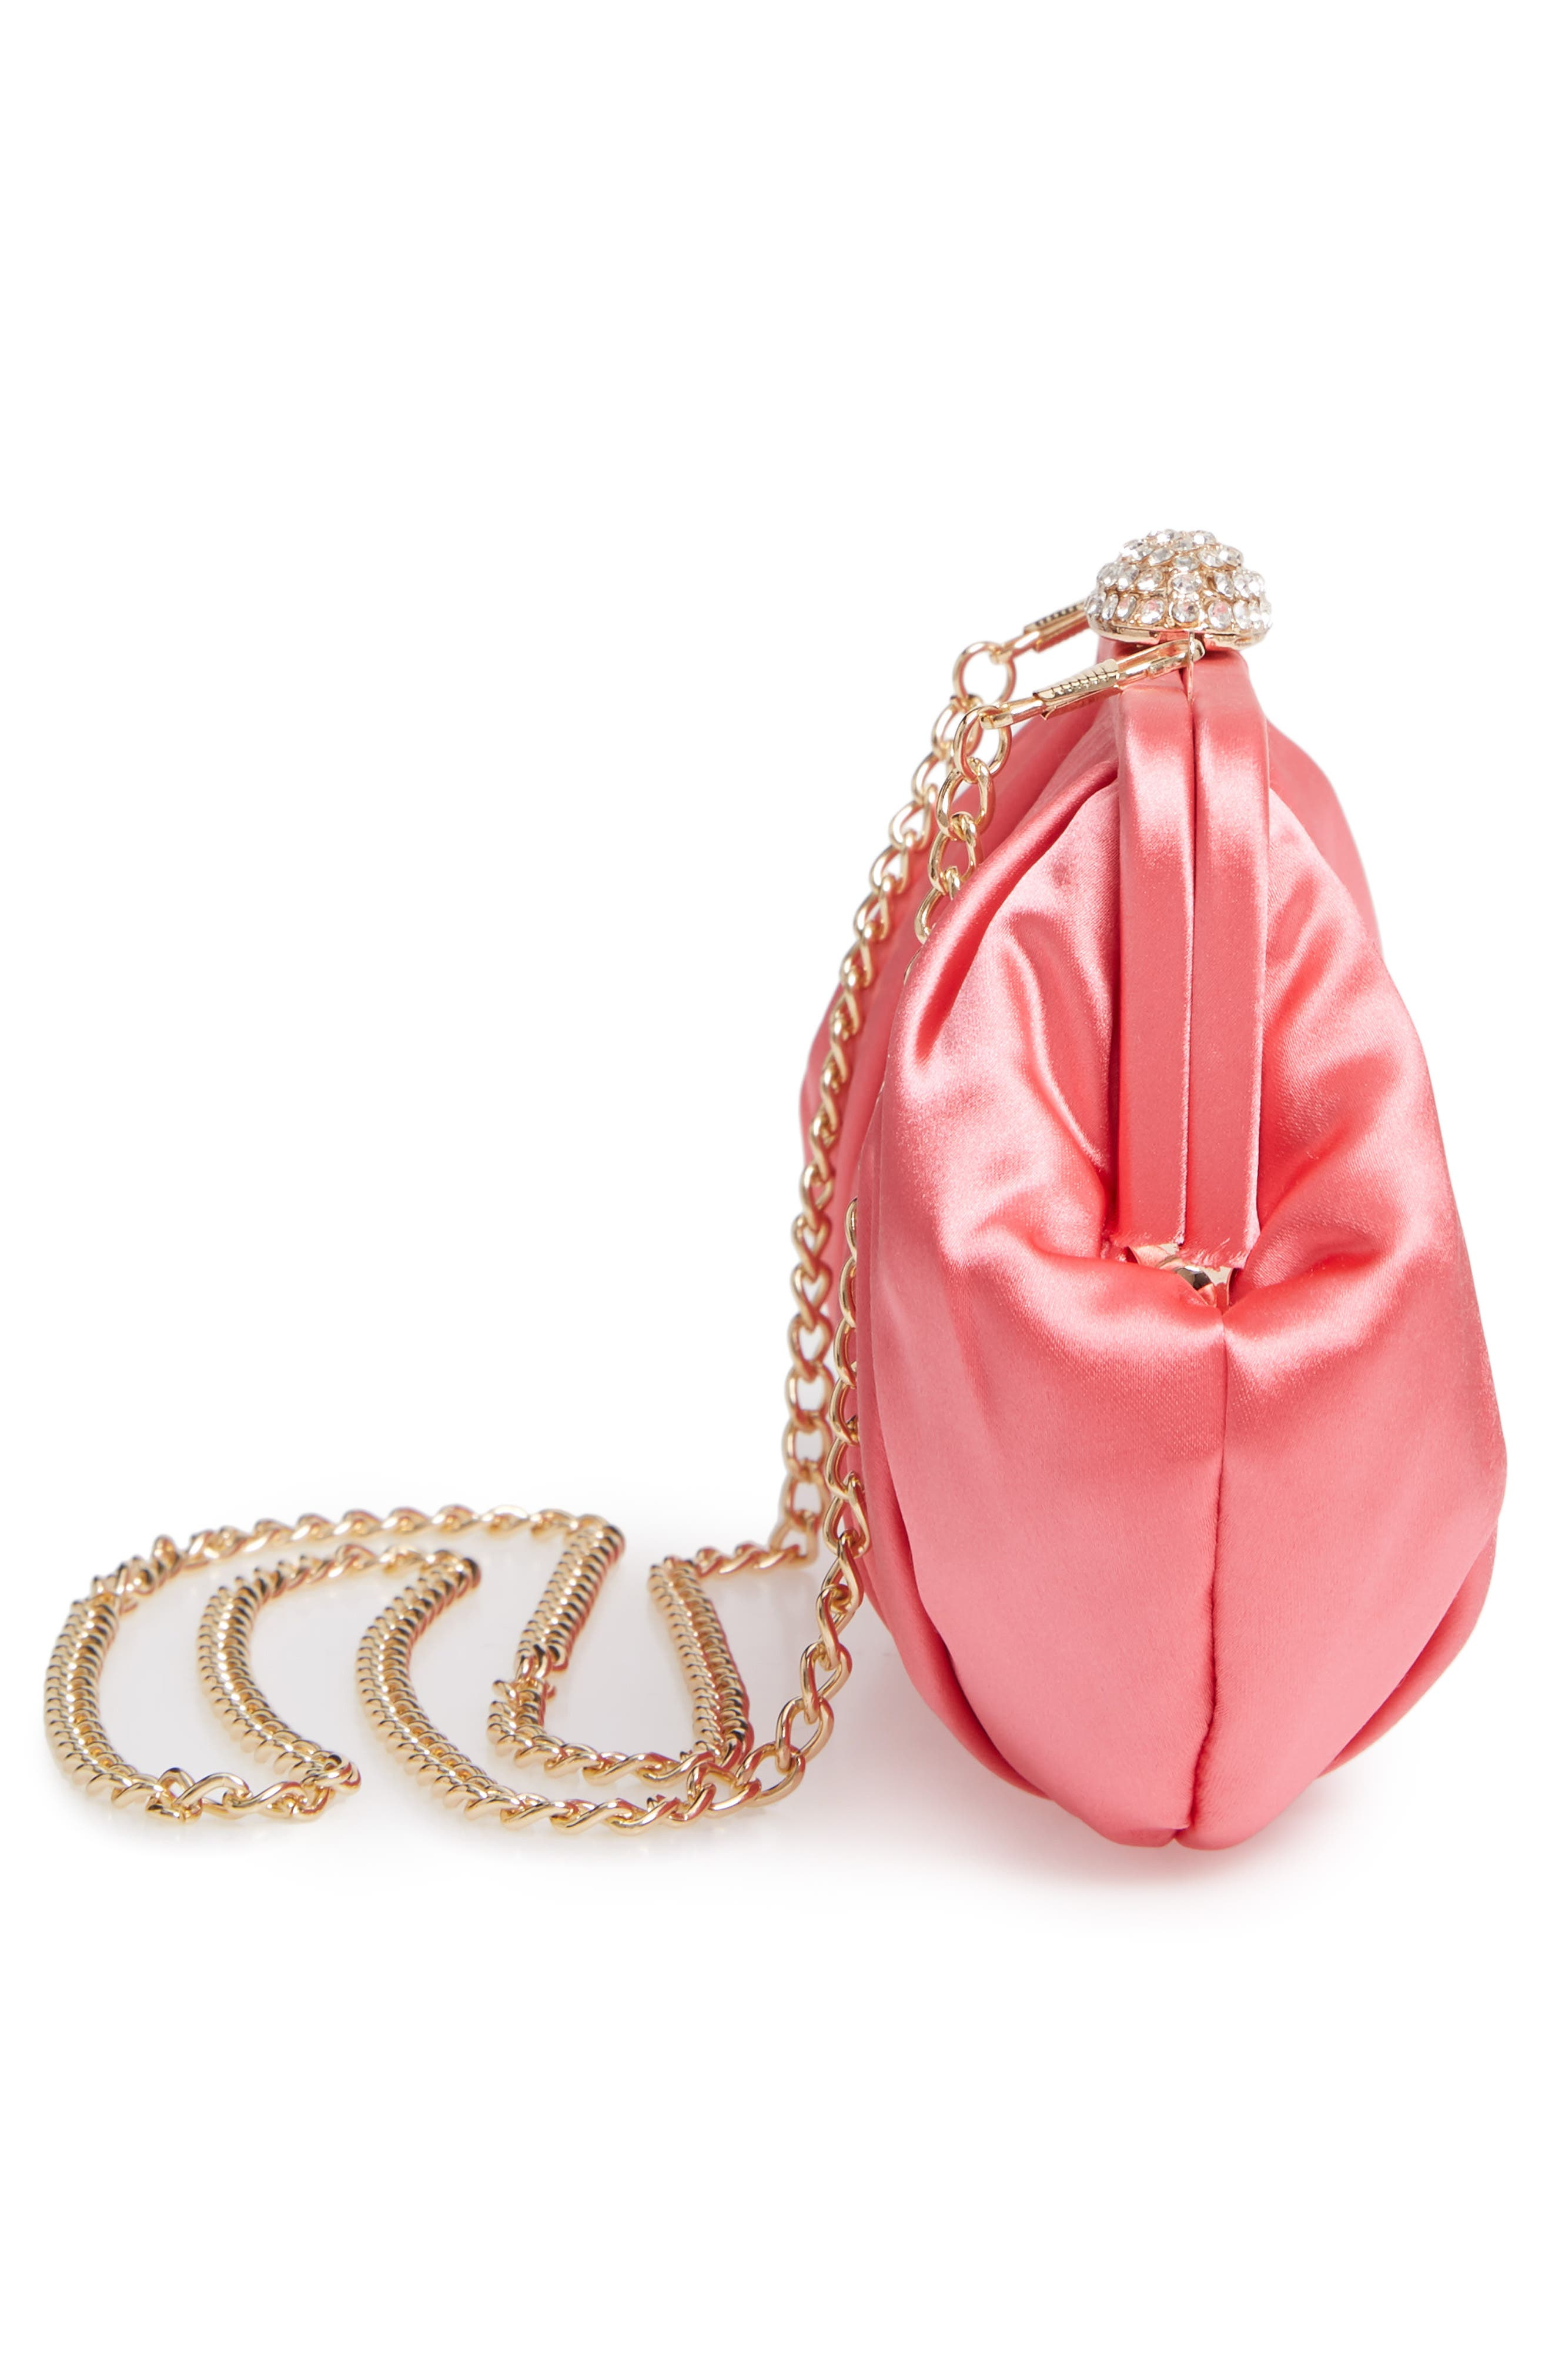 NINA, Concord Pleated Satin Frame Clutch, Alternate thumbnail 5, color, STRAWBERRY PUNCH